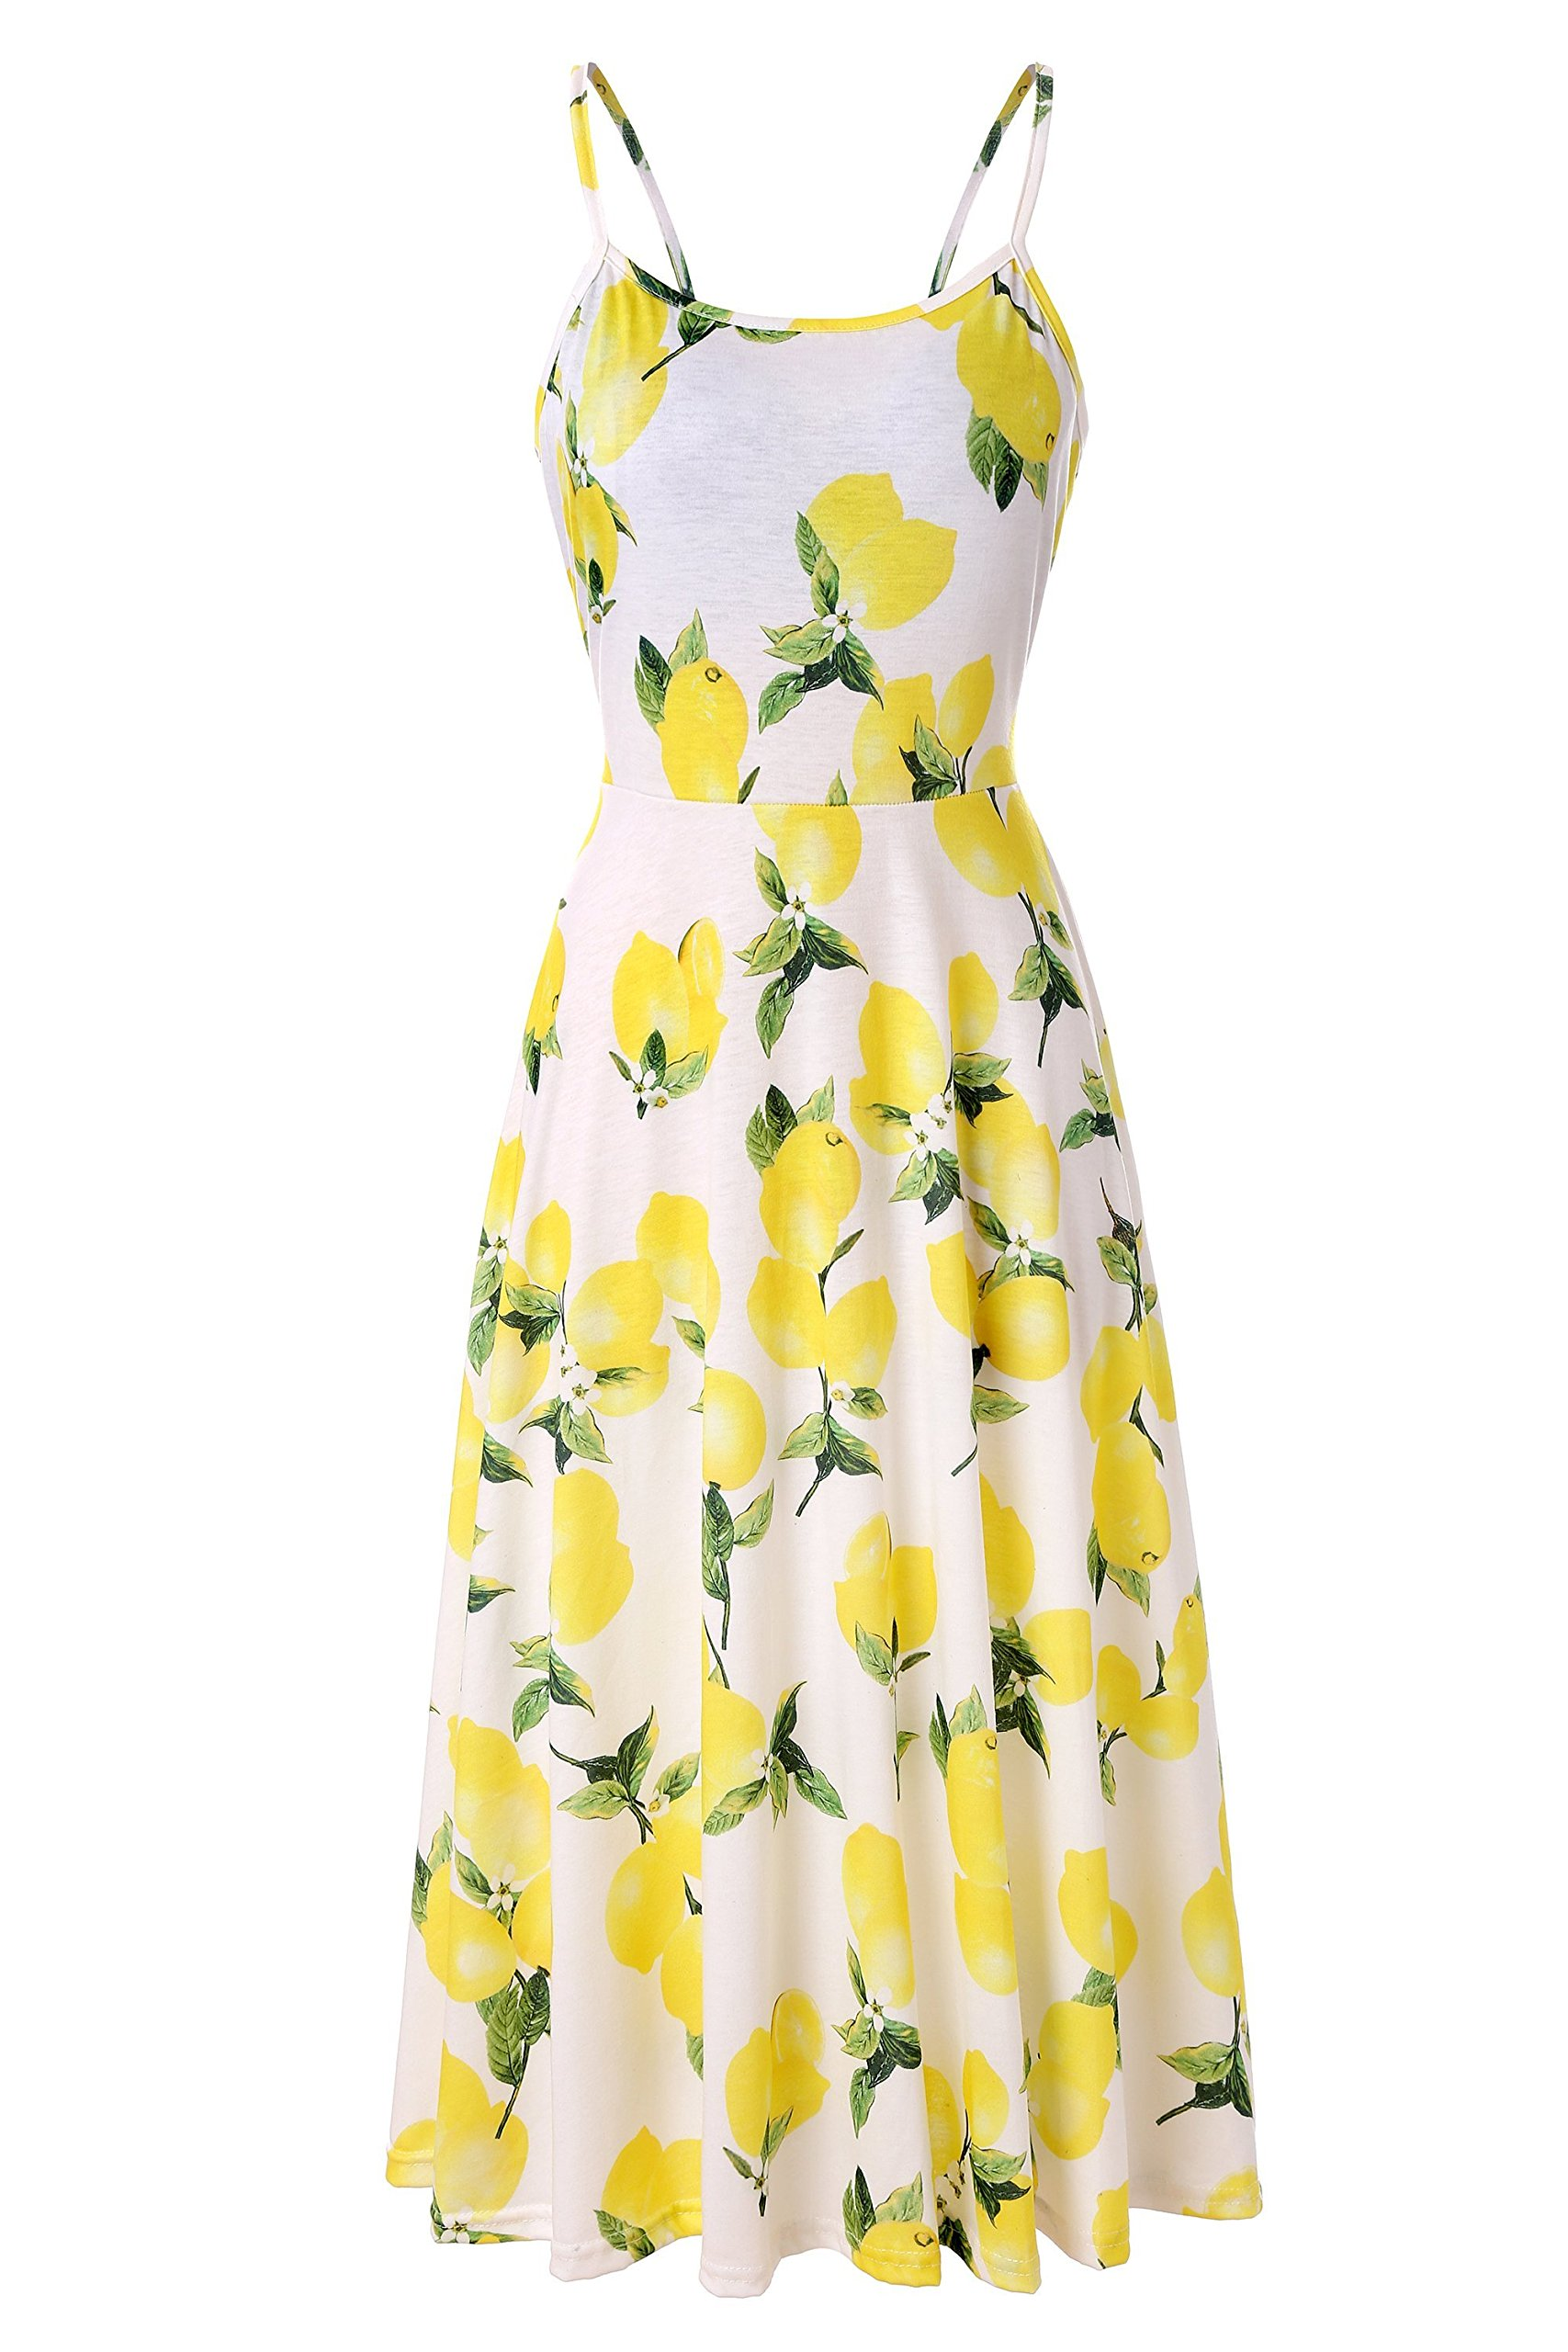 Viracy Empire Waist Dress, Womens Sleeveless Adjustable Strappy Sundress Loose Fit Pattern Cami Designer Chic Elegant Flowy Casual Summer Petite Cocktail Dresses Yellow Lemon M